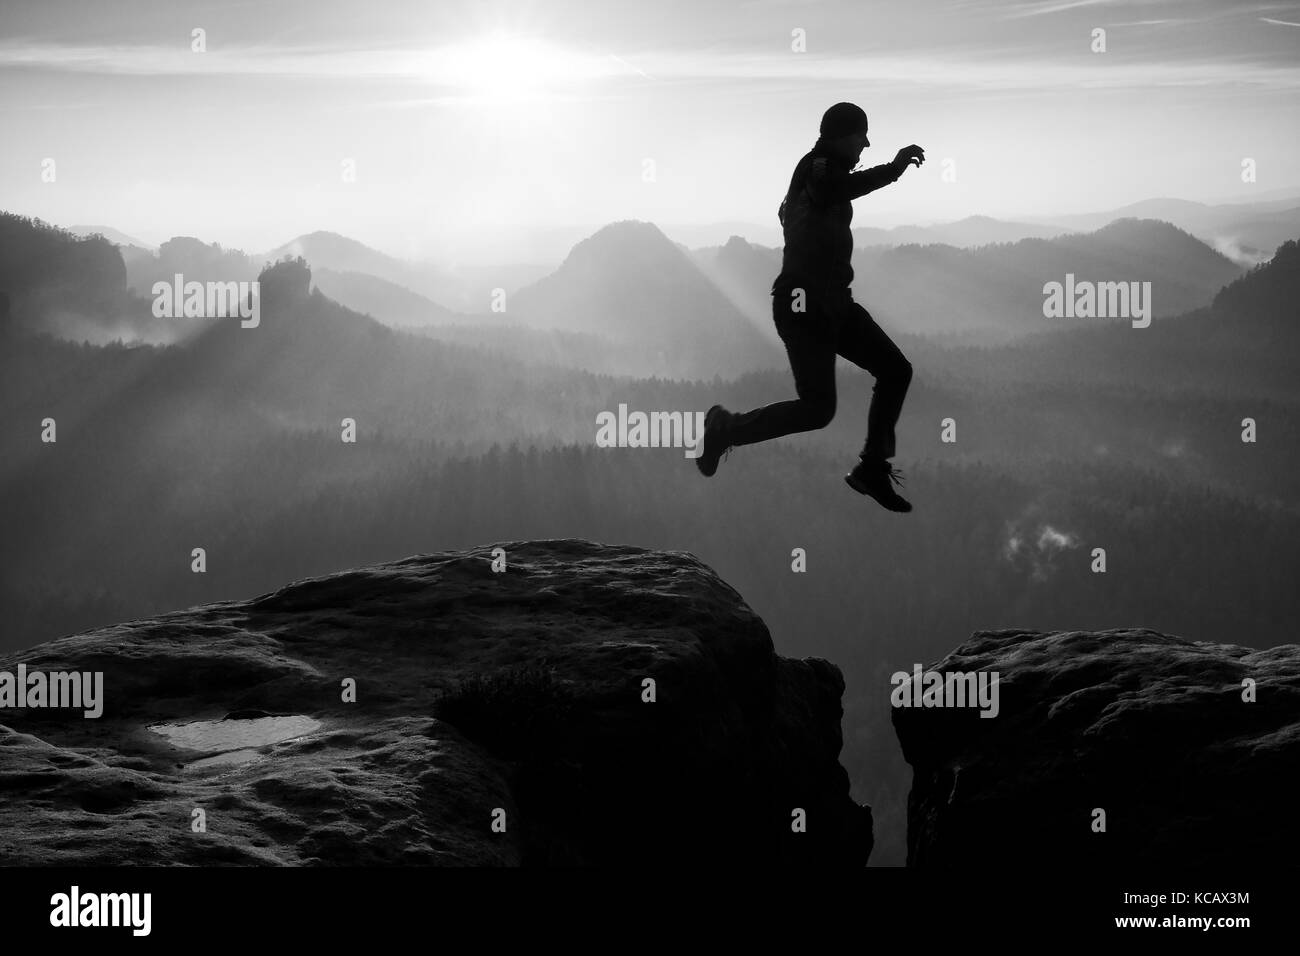 Hiker in black is jumping between rocky peaks. Amazing activities in rocky mountains, heavy mist in deep valley. - Stock Image